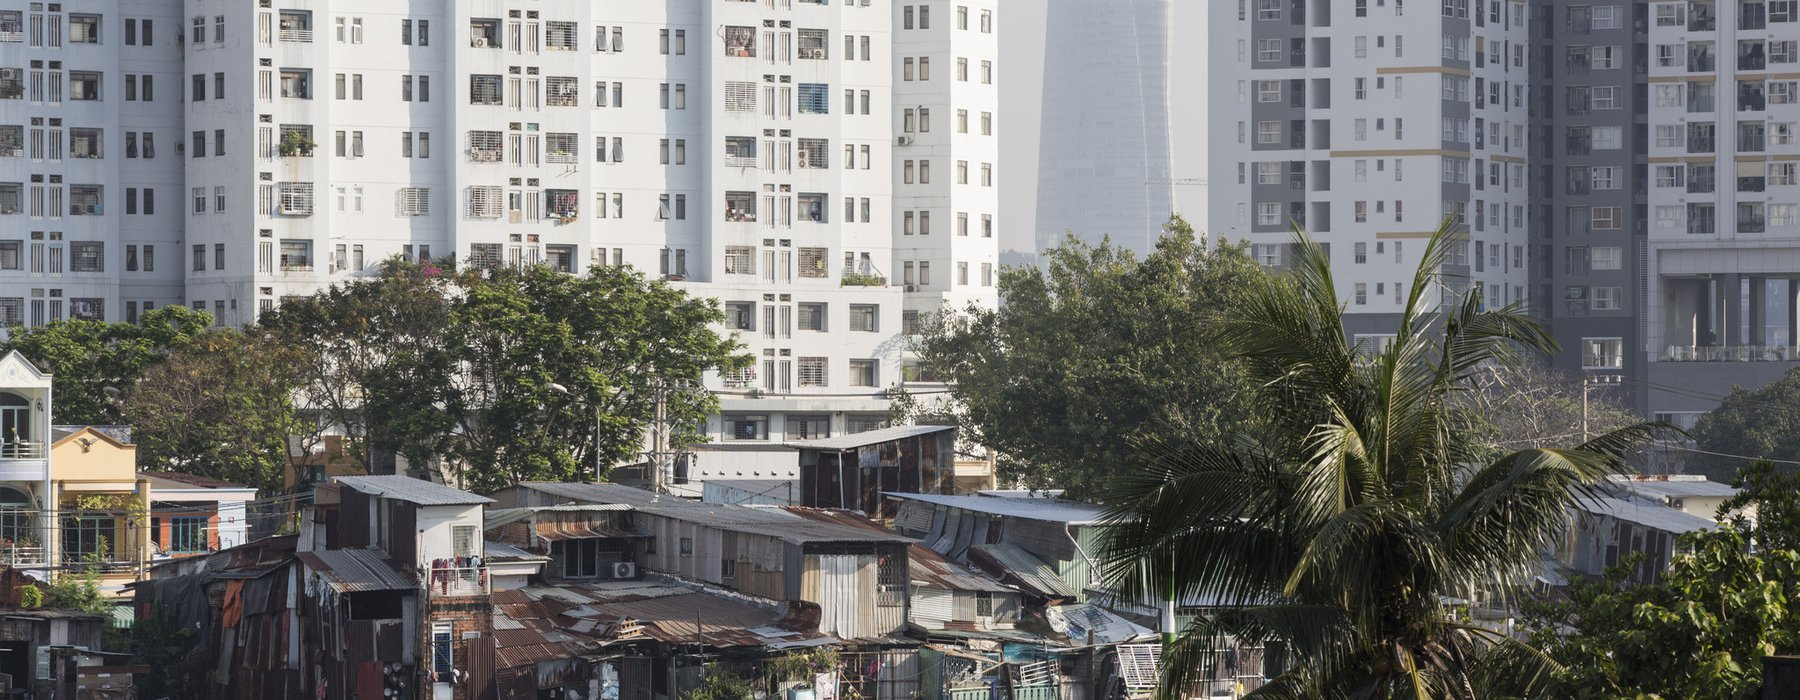 Large expensive skyscrapers rise above slums along the river